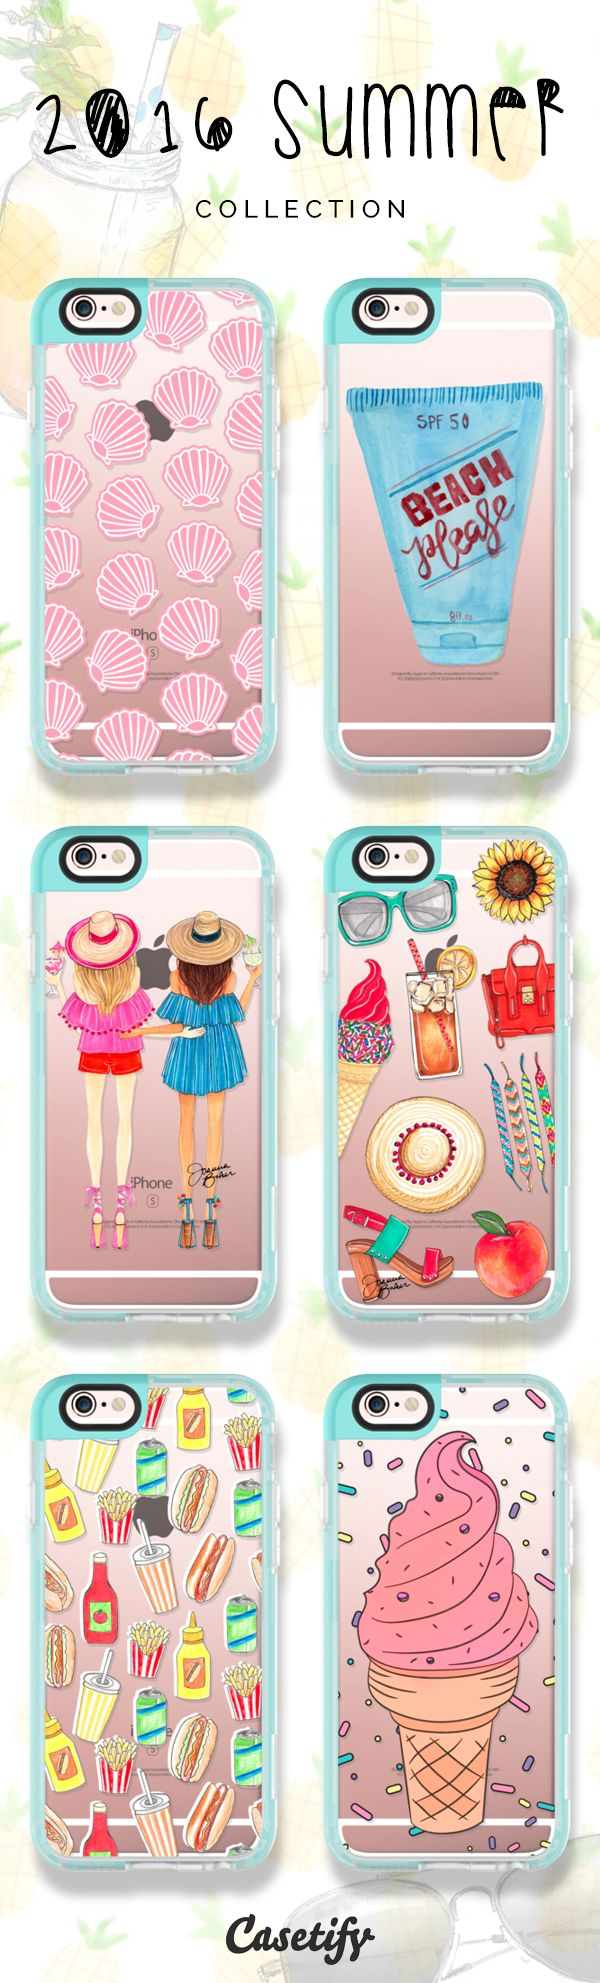 Every #summer has its own story. Click through to check out our latest 2016 Summer Collection >>> https://www.casetify.com/collections/summer | @casetify